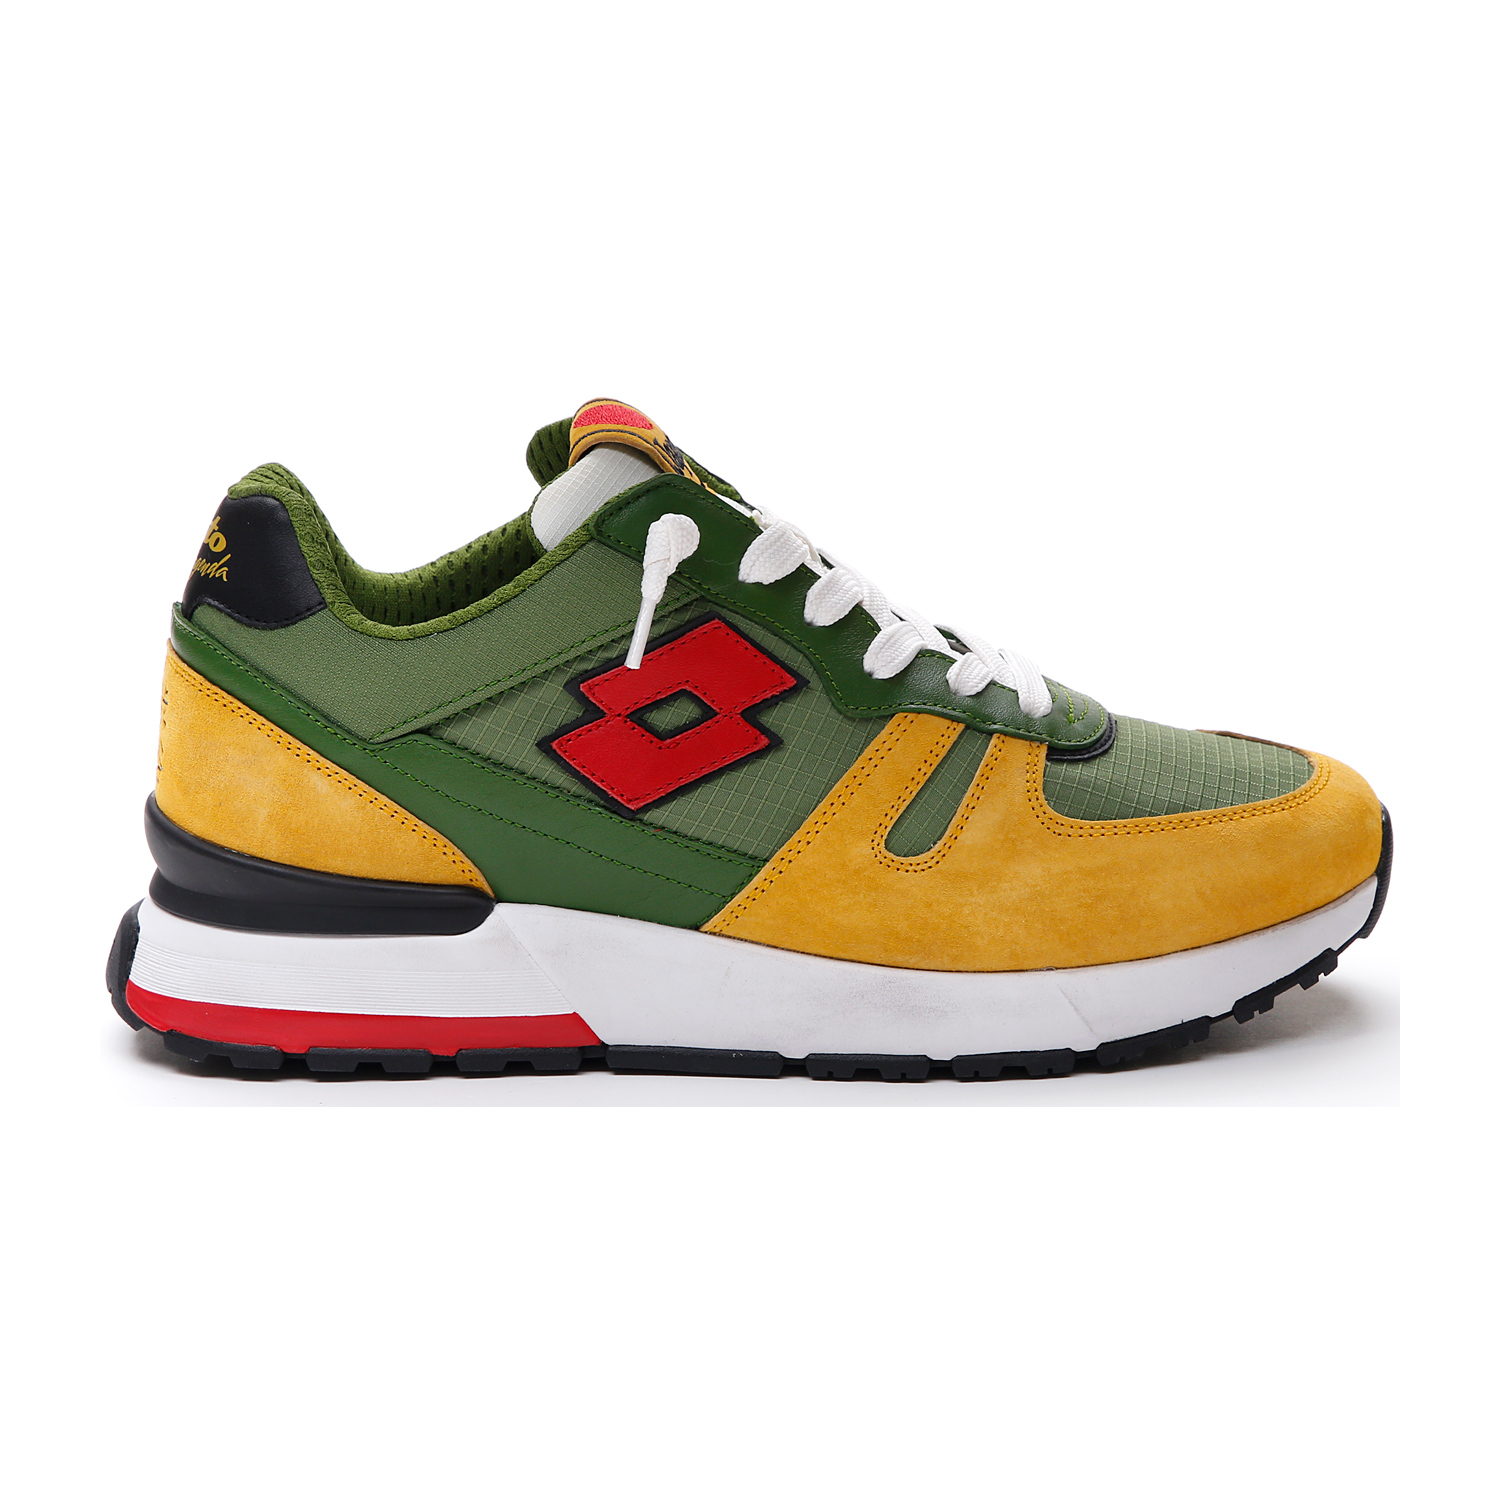 Lotto Sport Italia Footwear, clothing and accessories for